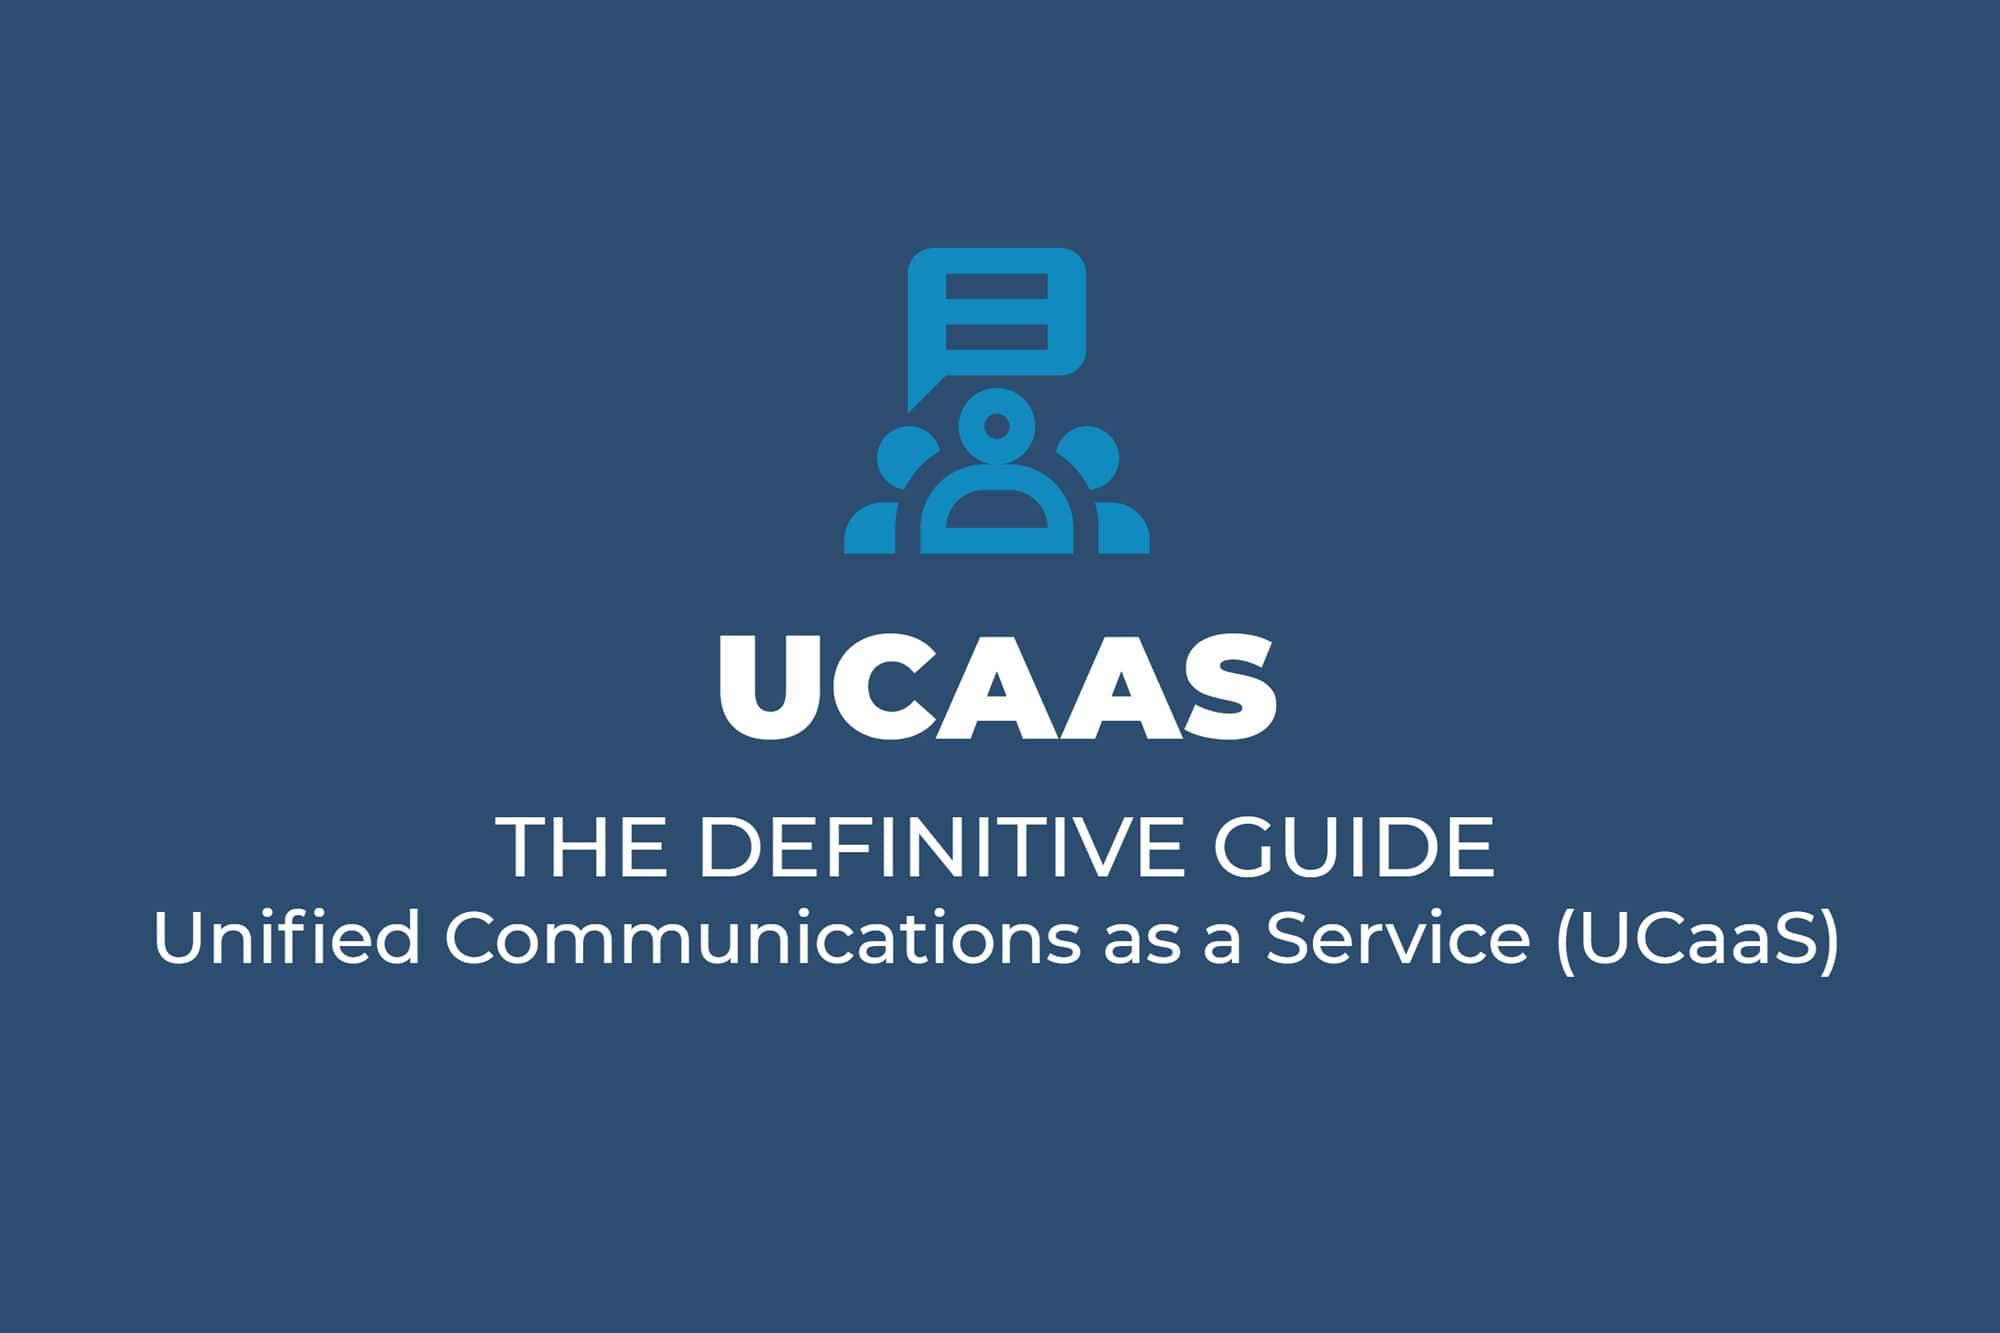 UCaaS (Unified Communications as a Service) – The Definitive Guide